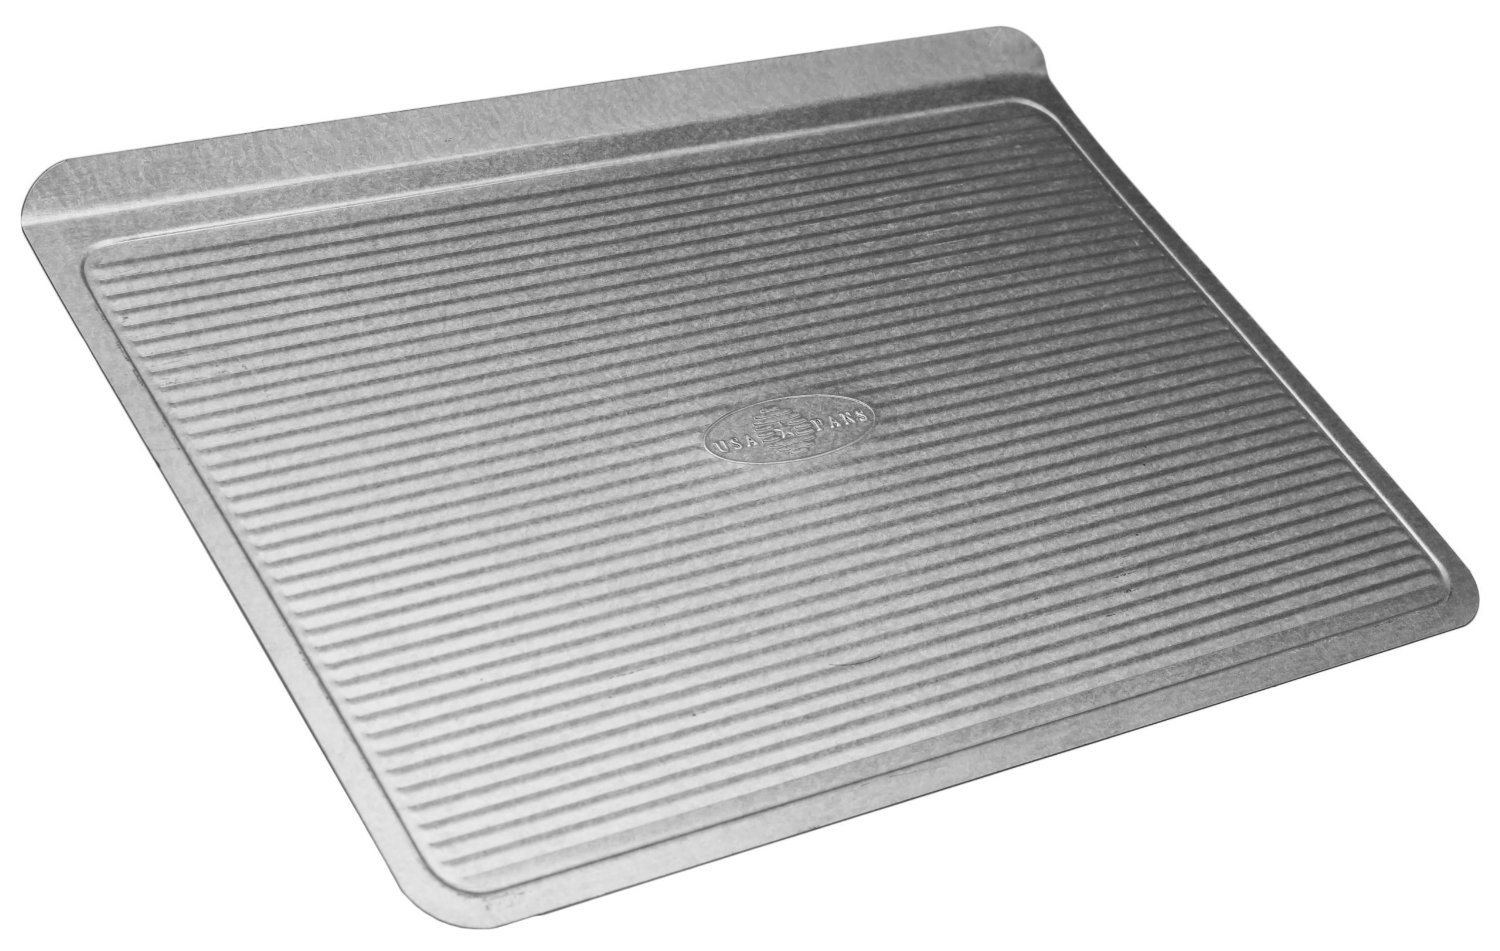 USA Pan Aluminized Steel Cookie Sheet, 18 x 14 Inch